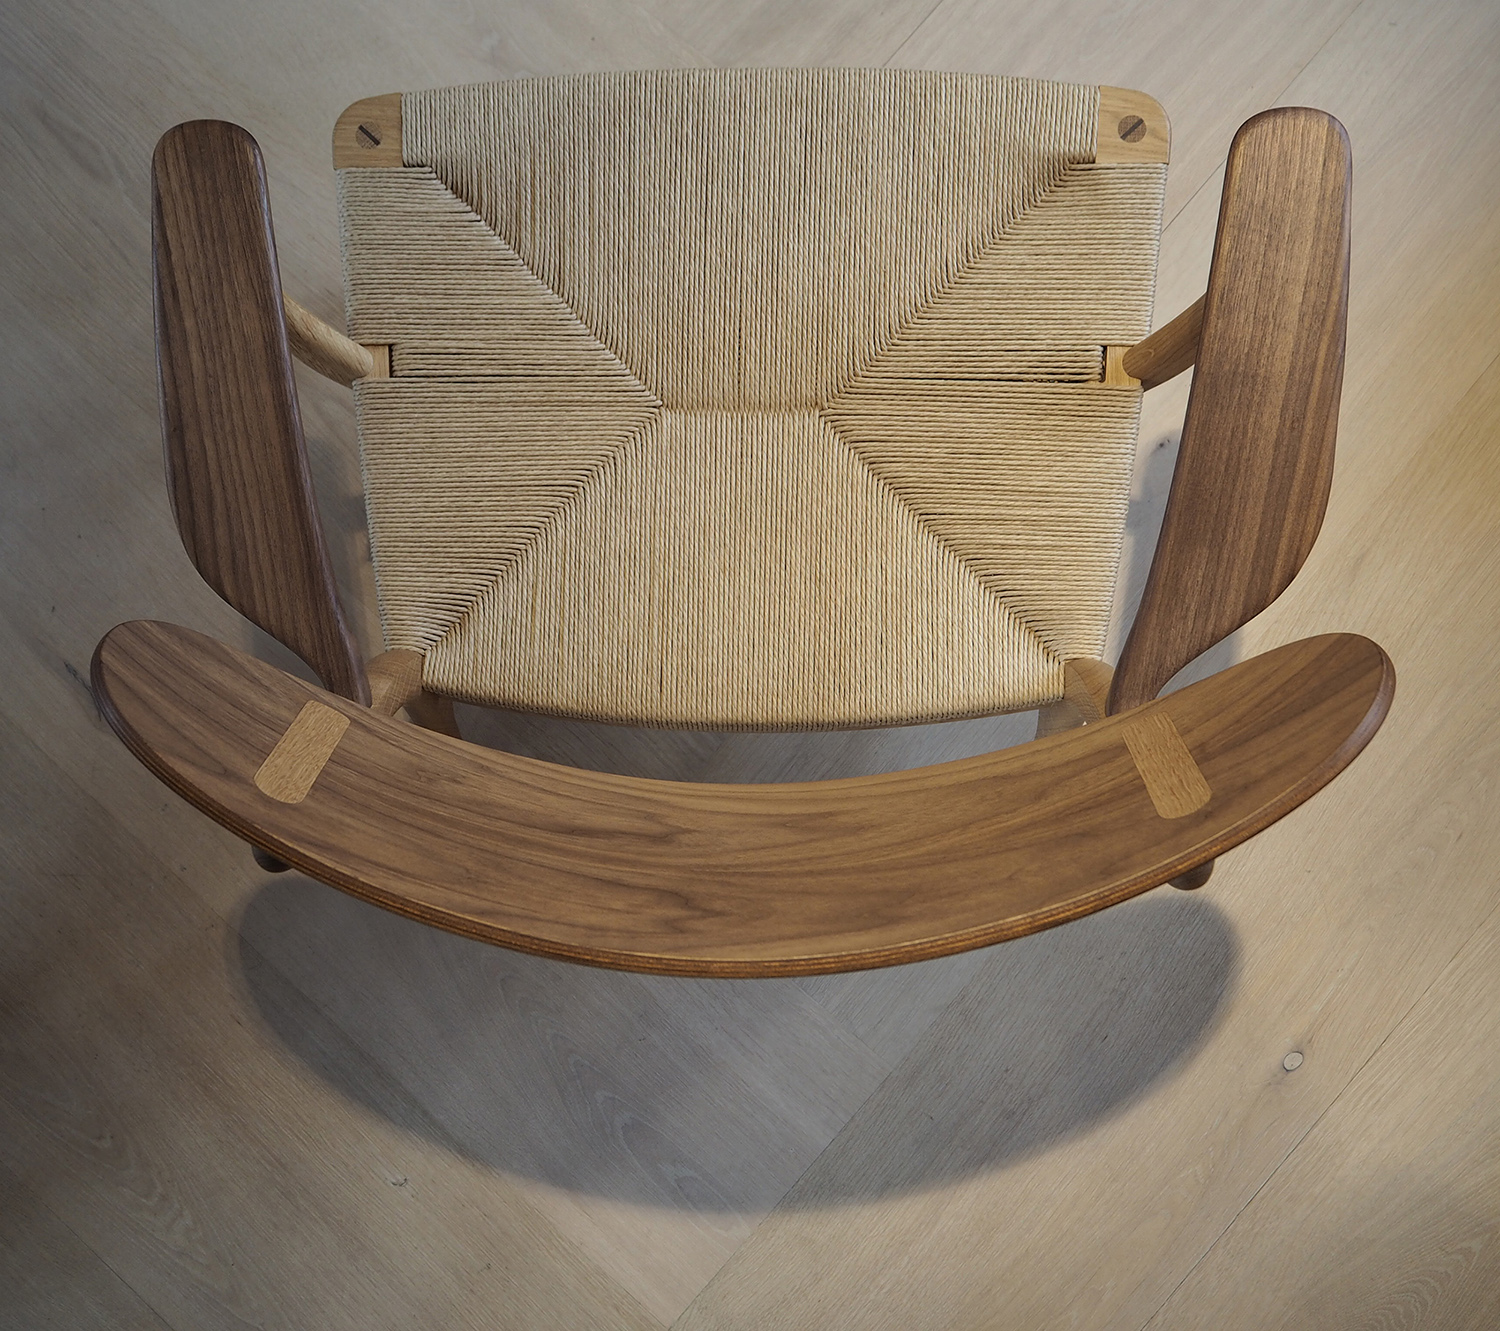 CH22 Lounge chair by Han J Wegner